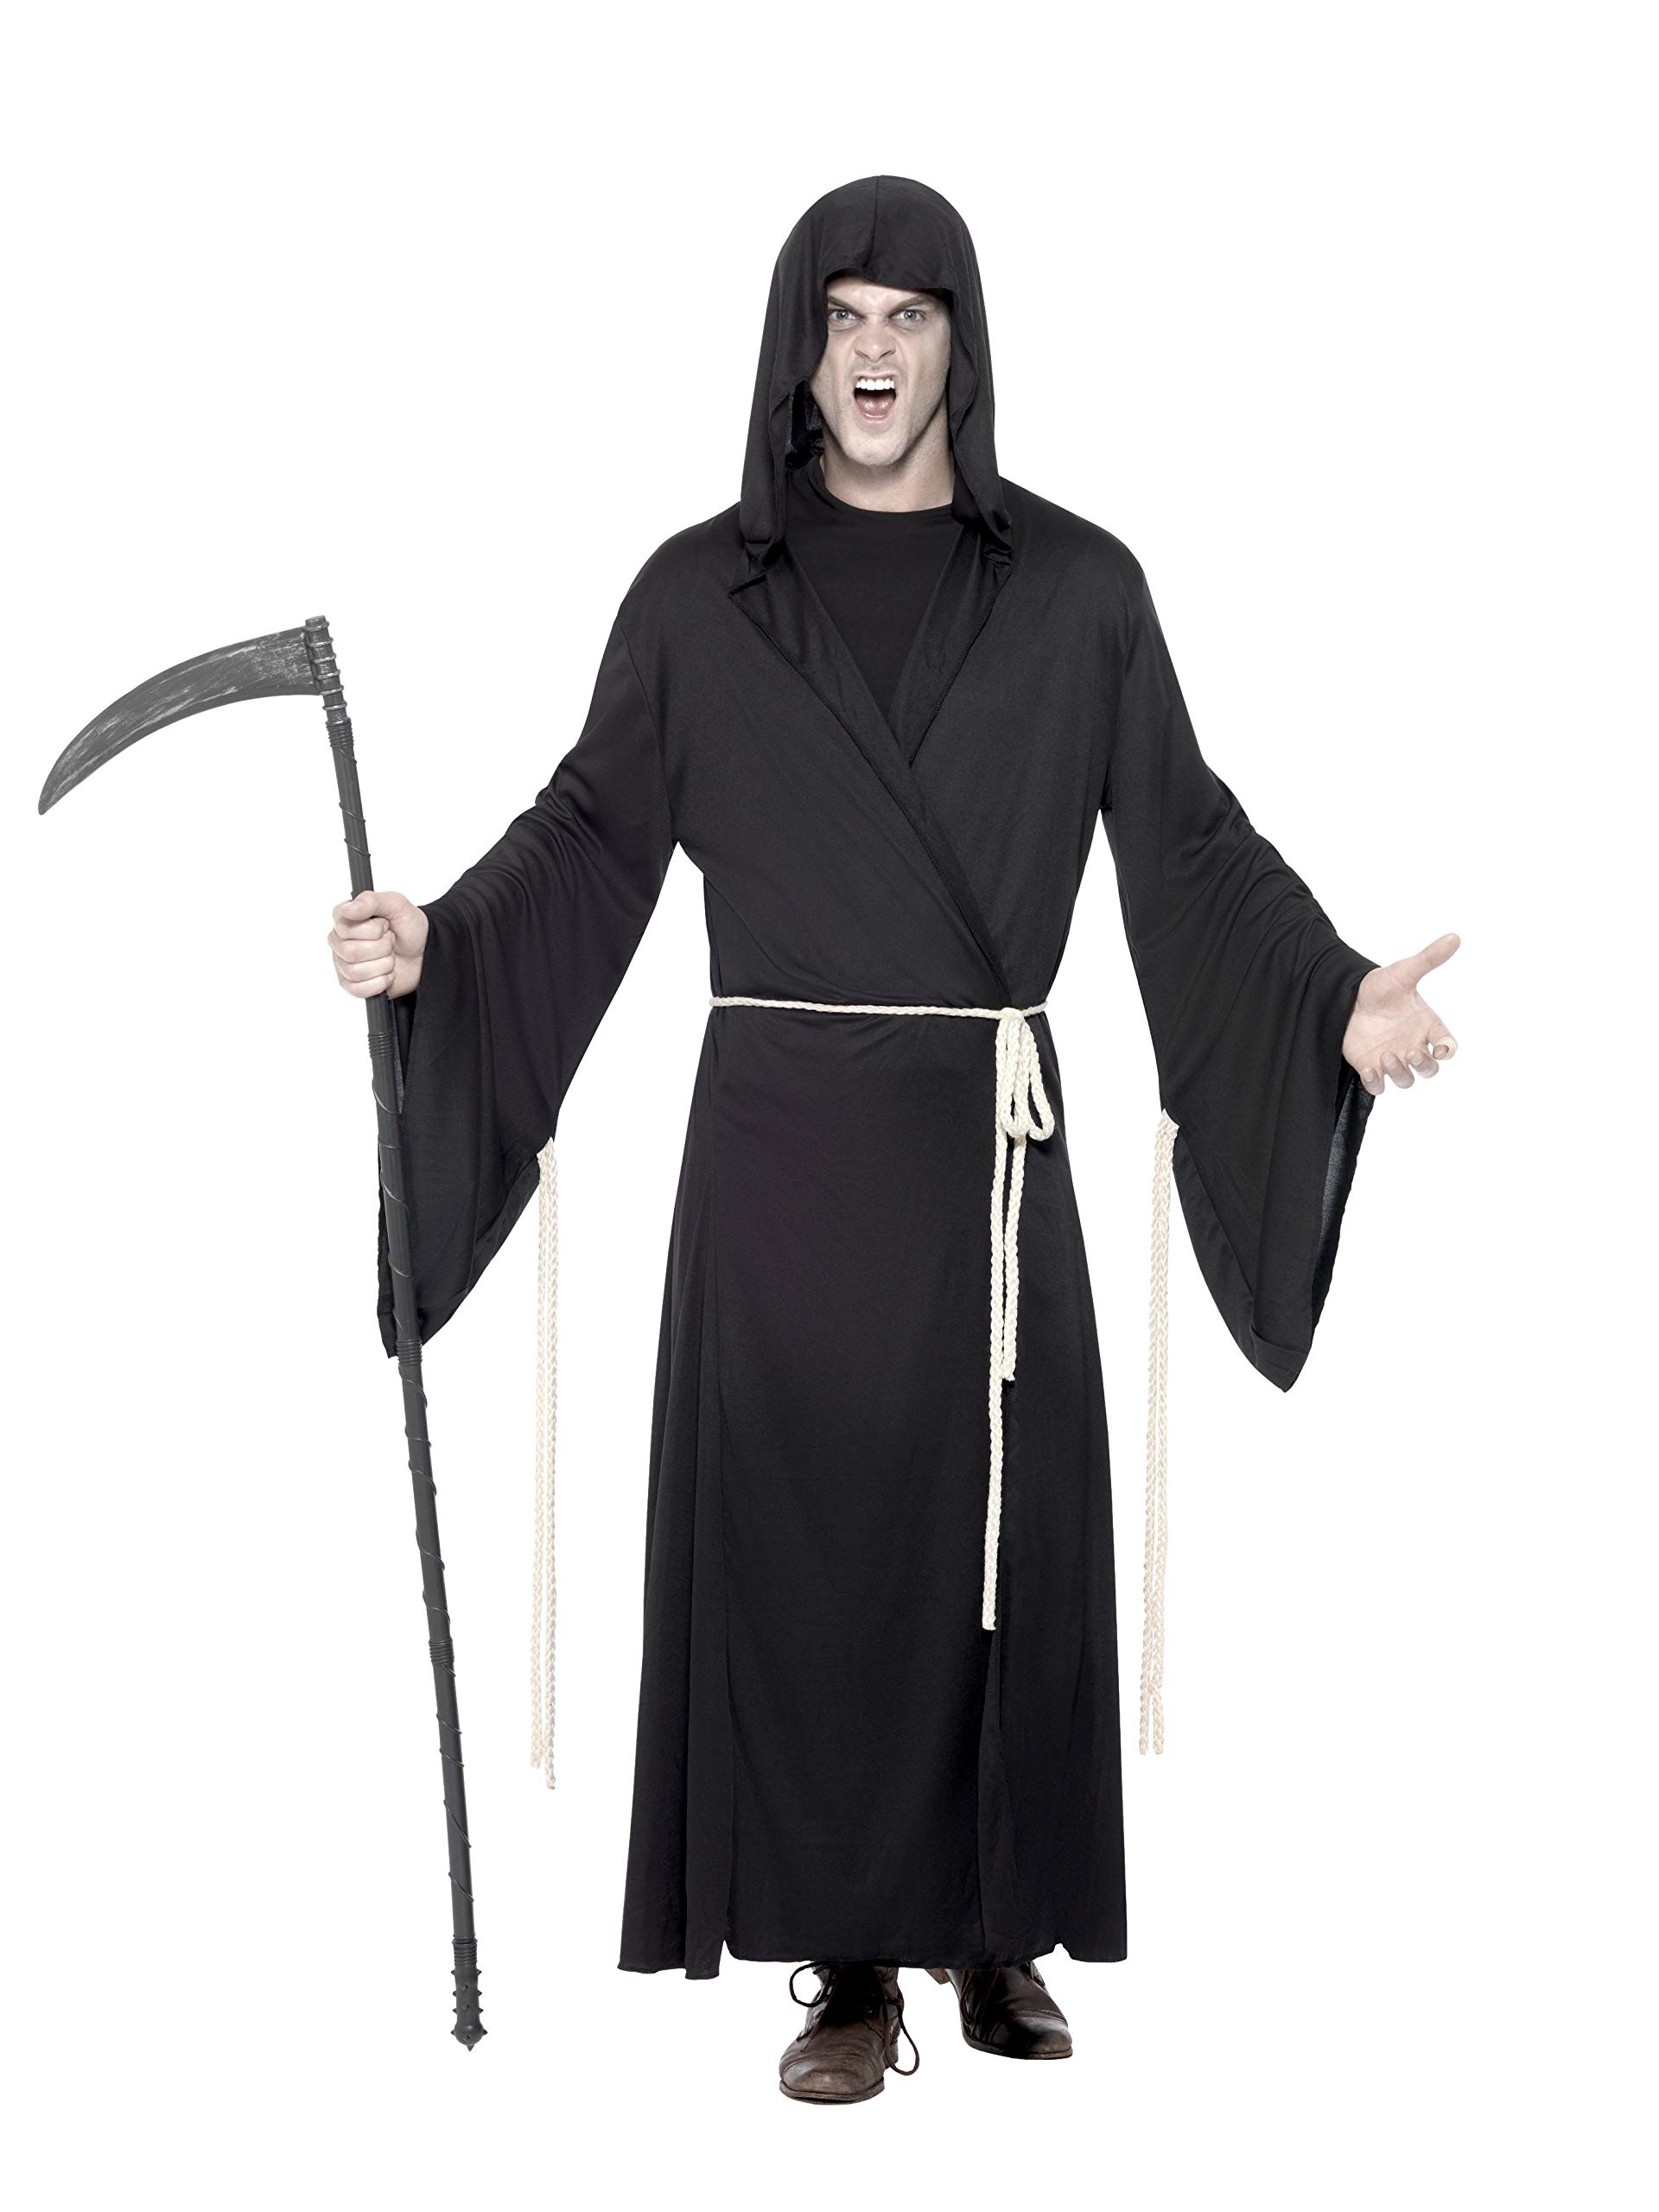 Ghost Pirate Man Costume Shipmate Halloween Scary Ghoul Mens Fancy Dress Outfit